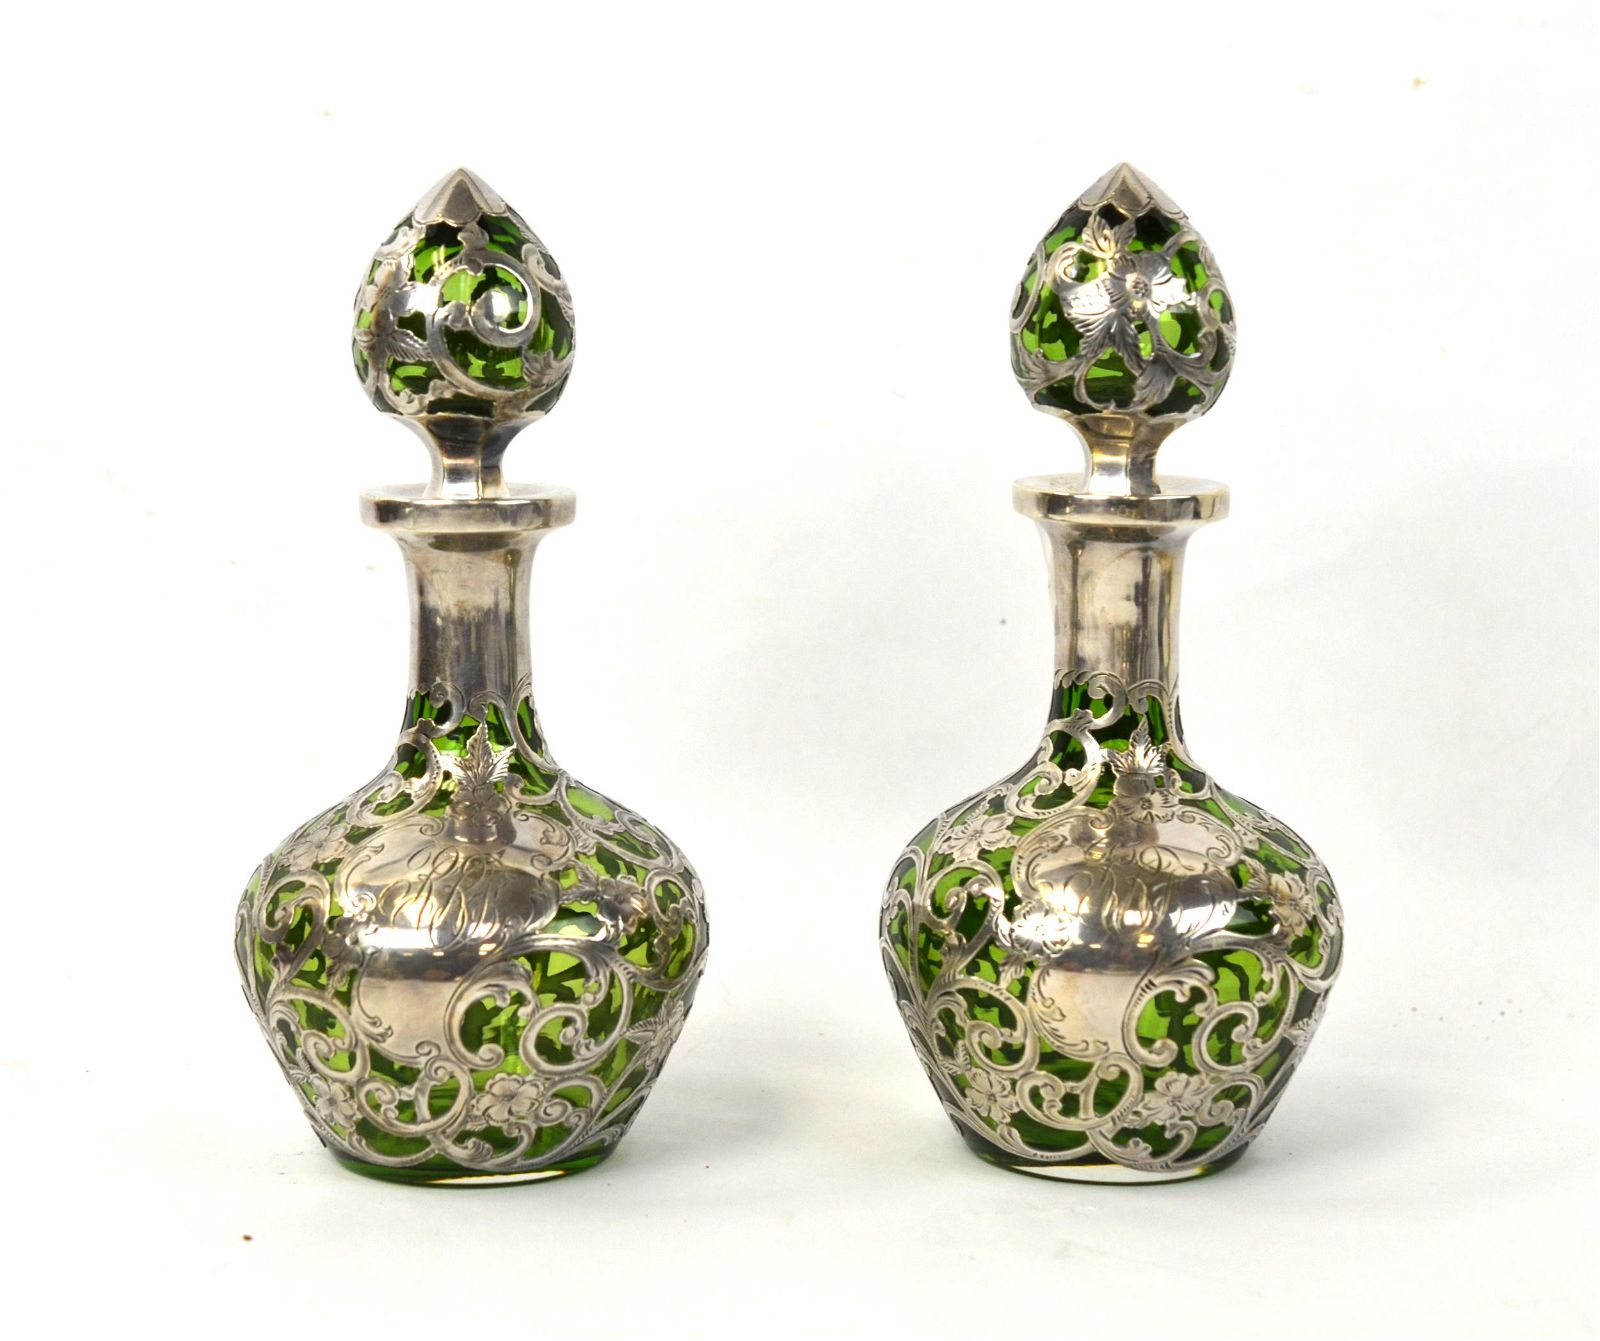 Pr Green Glass Decanters with Silver Overlay